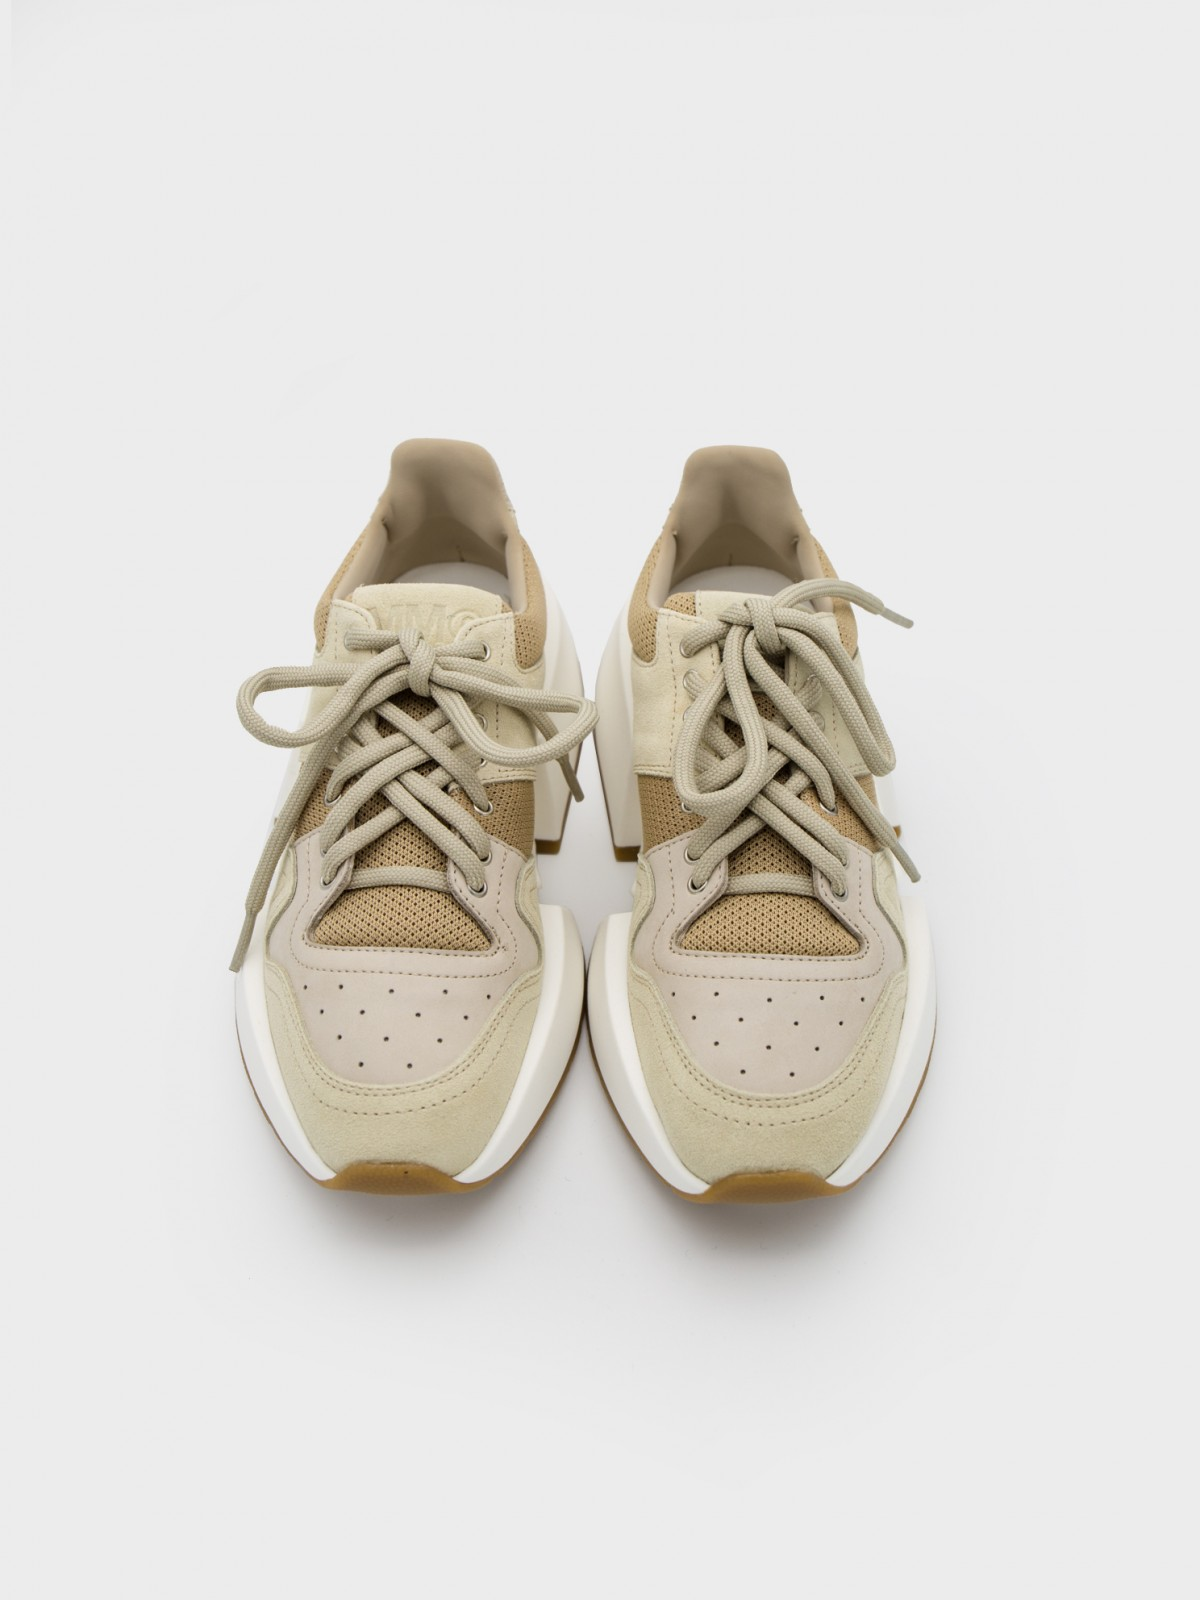 MM6 Maison Margiela Leather Runner Sneakers in Beige